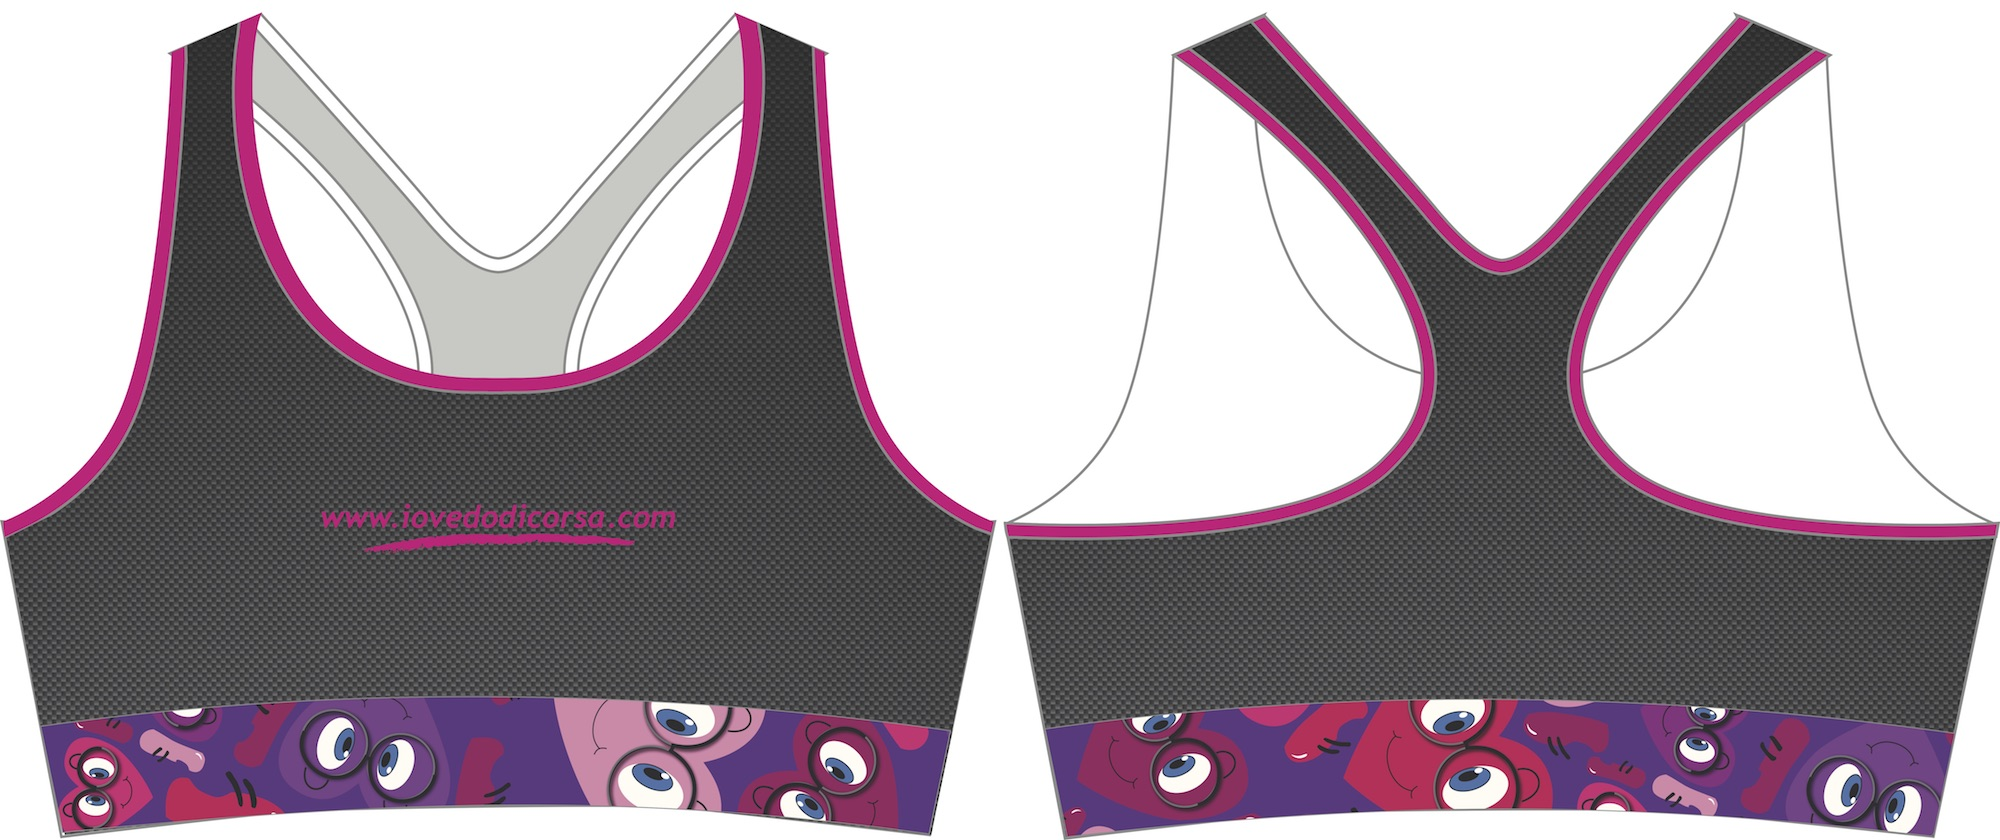 Cosmo Carbon Running Bra